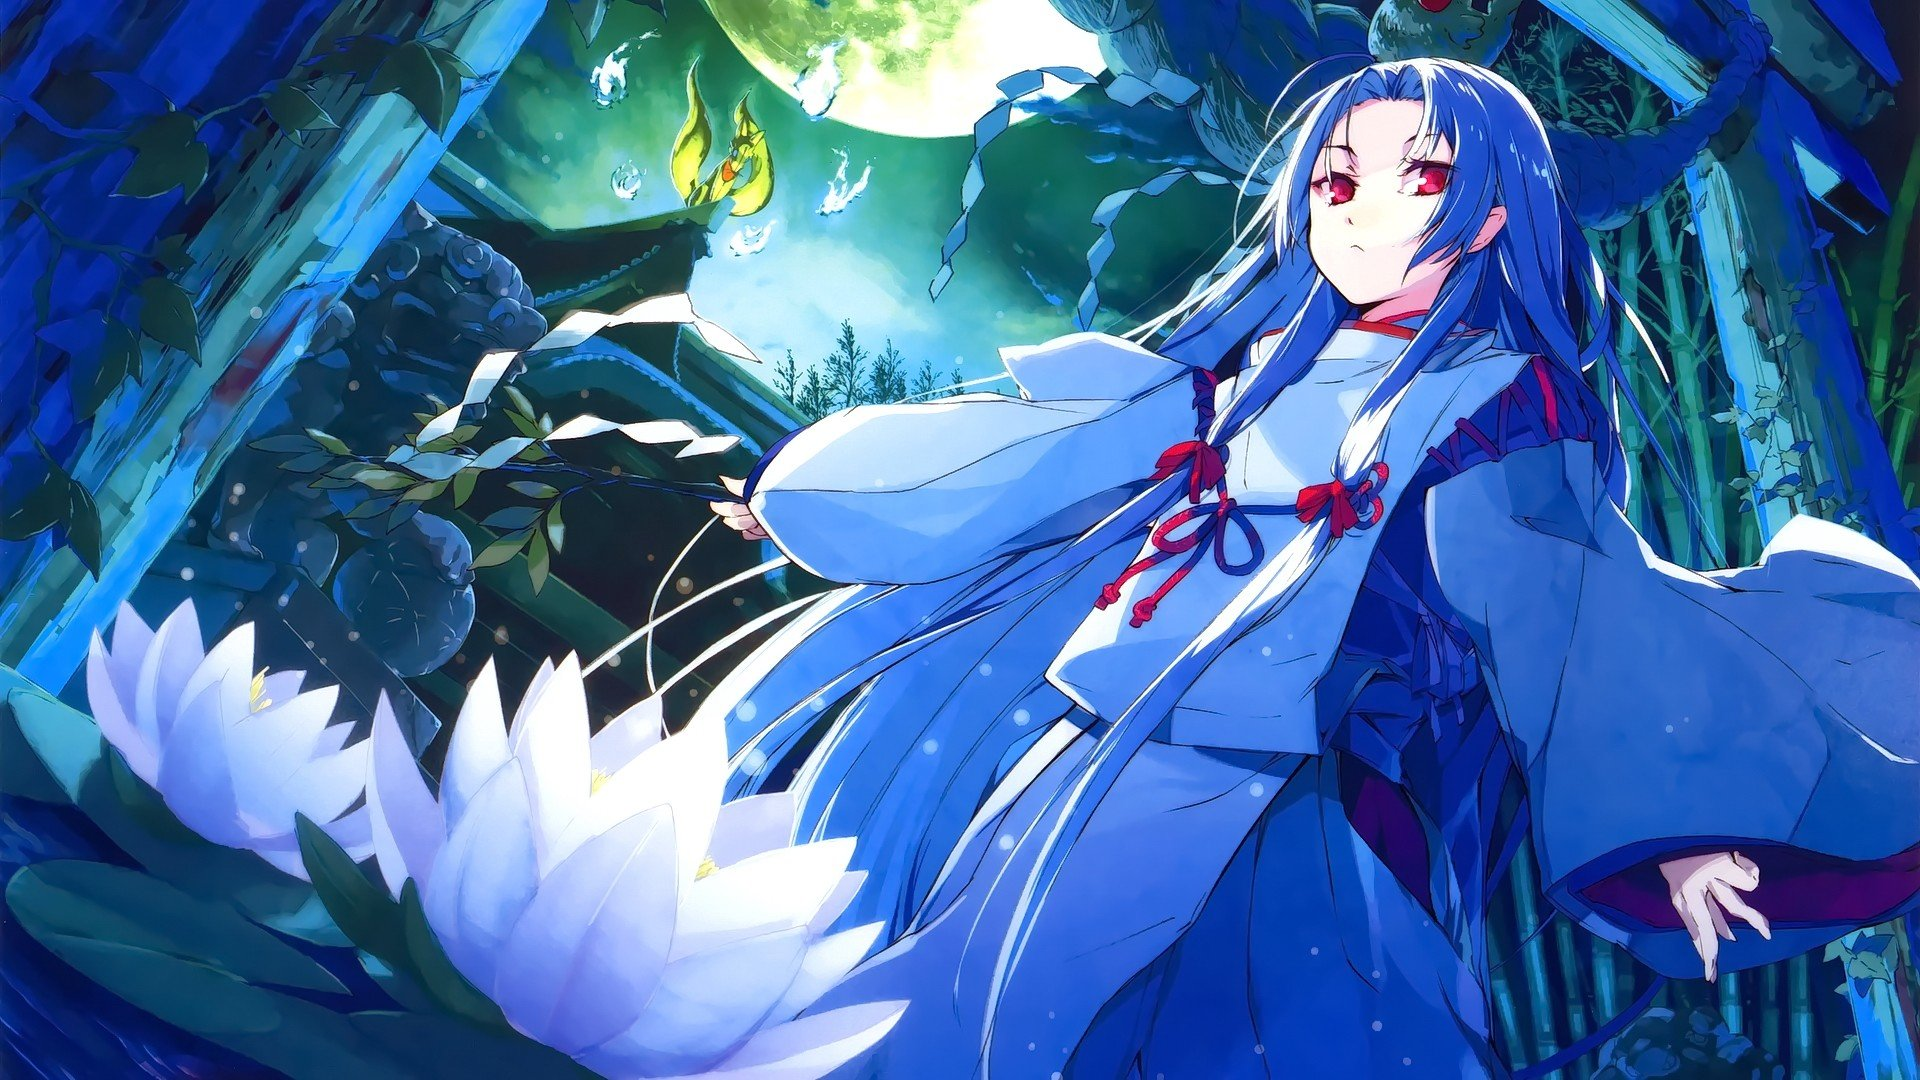 Free Download Anime Girl Wallpaper Id 151350 Hd 1920x1080 For Pc